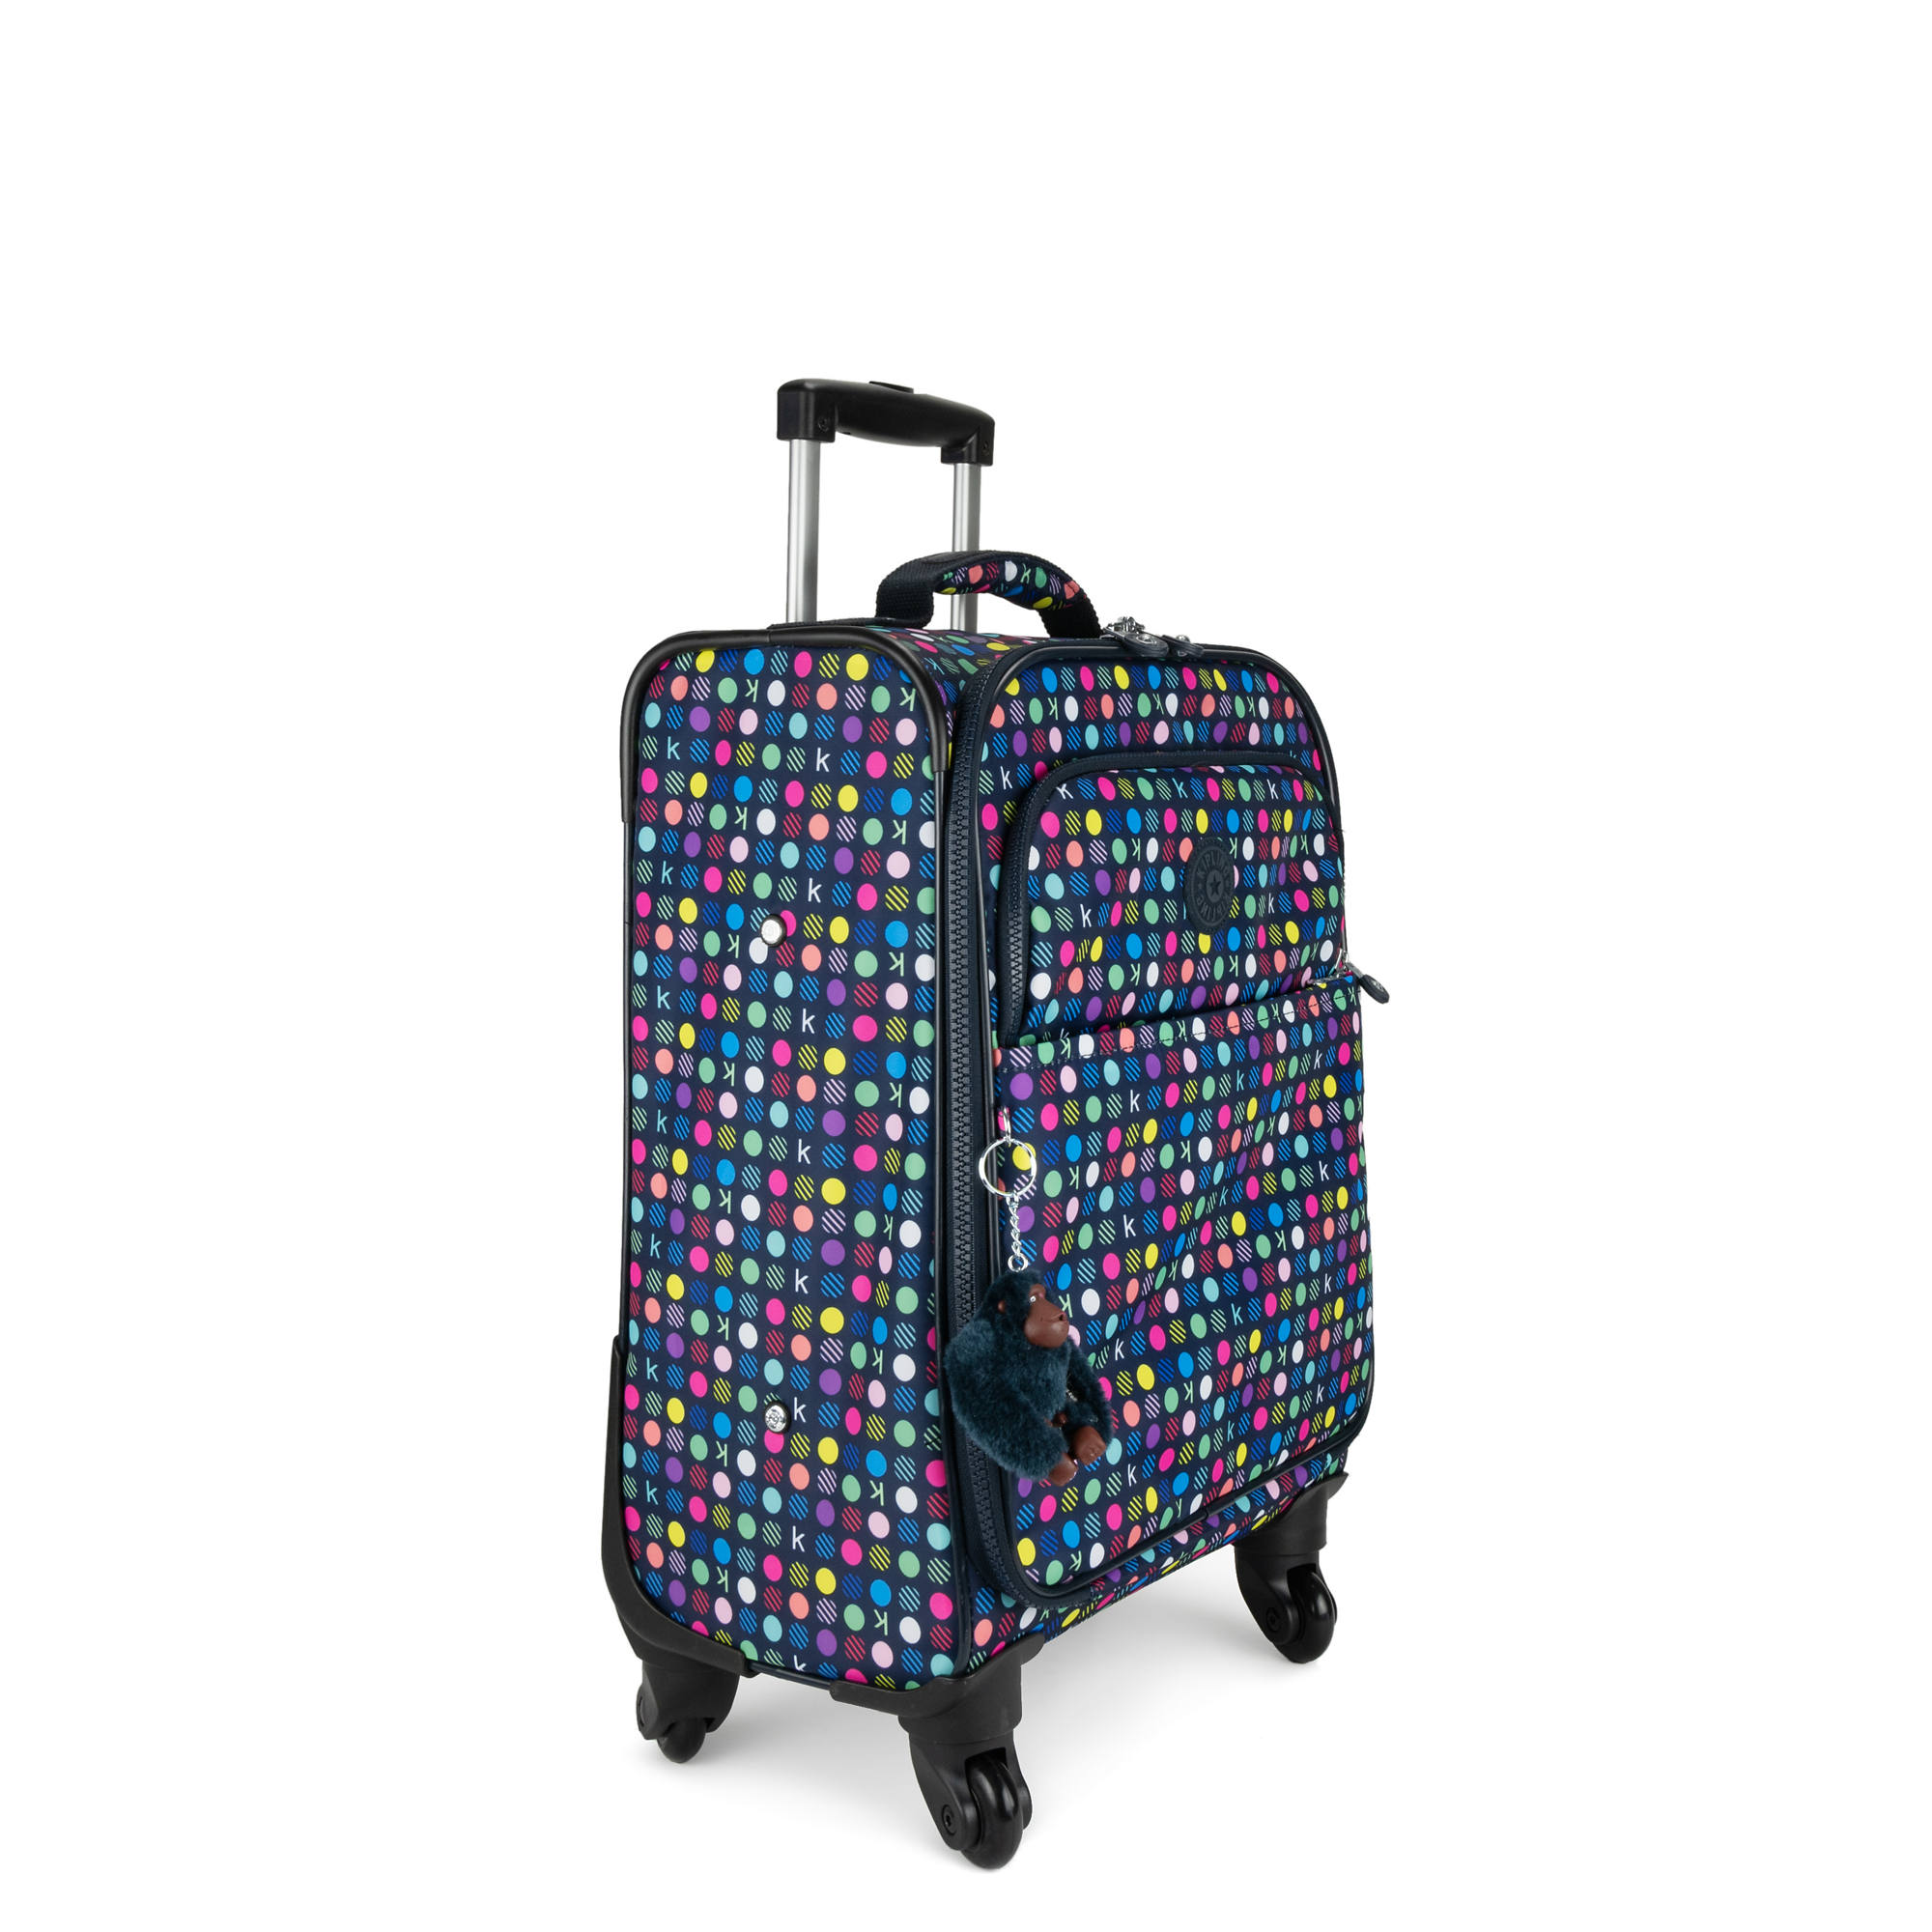 d91b7f8cd5 Parker Small Printed Wheeled Carry-On Luggage,K Multi Dot,large